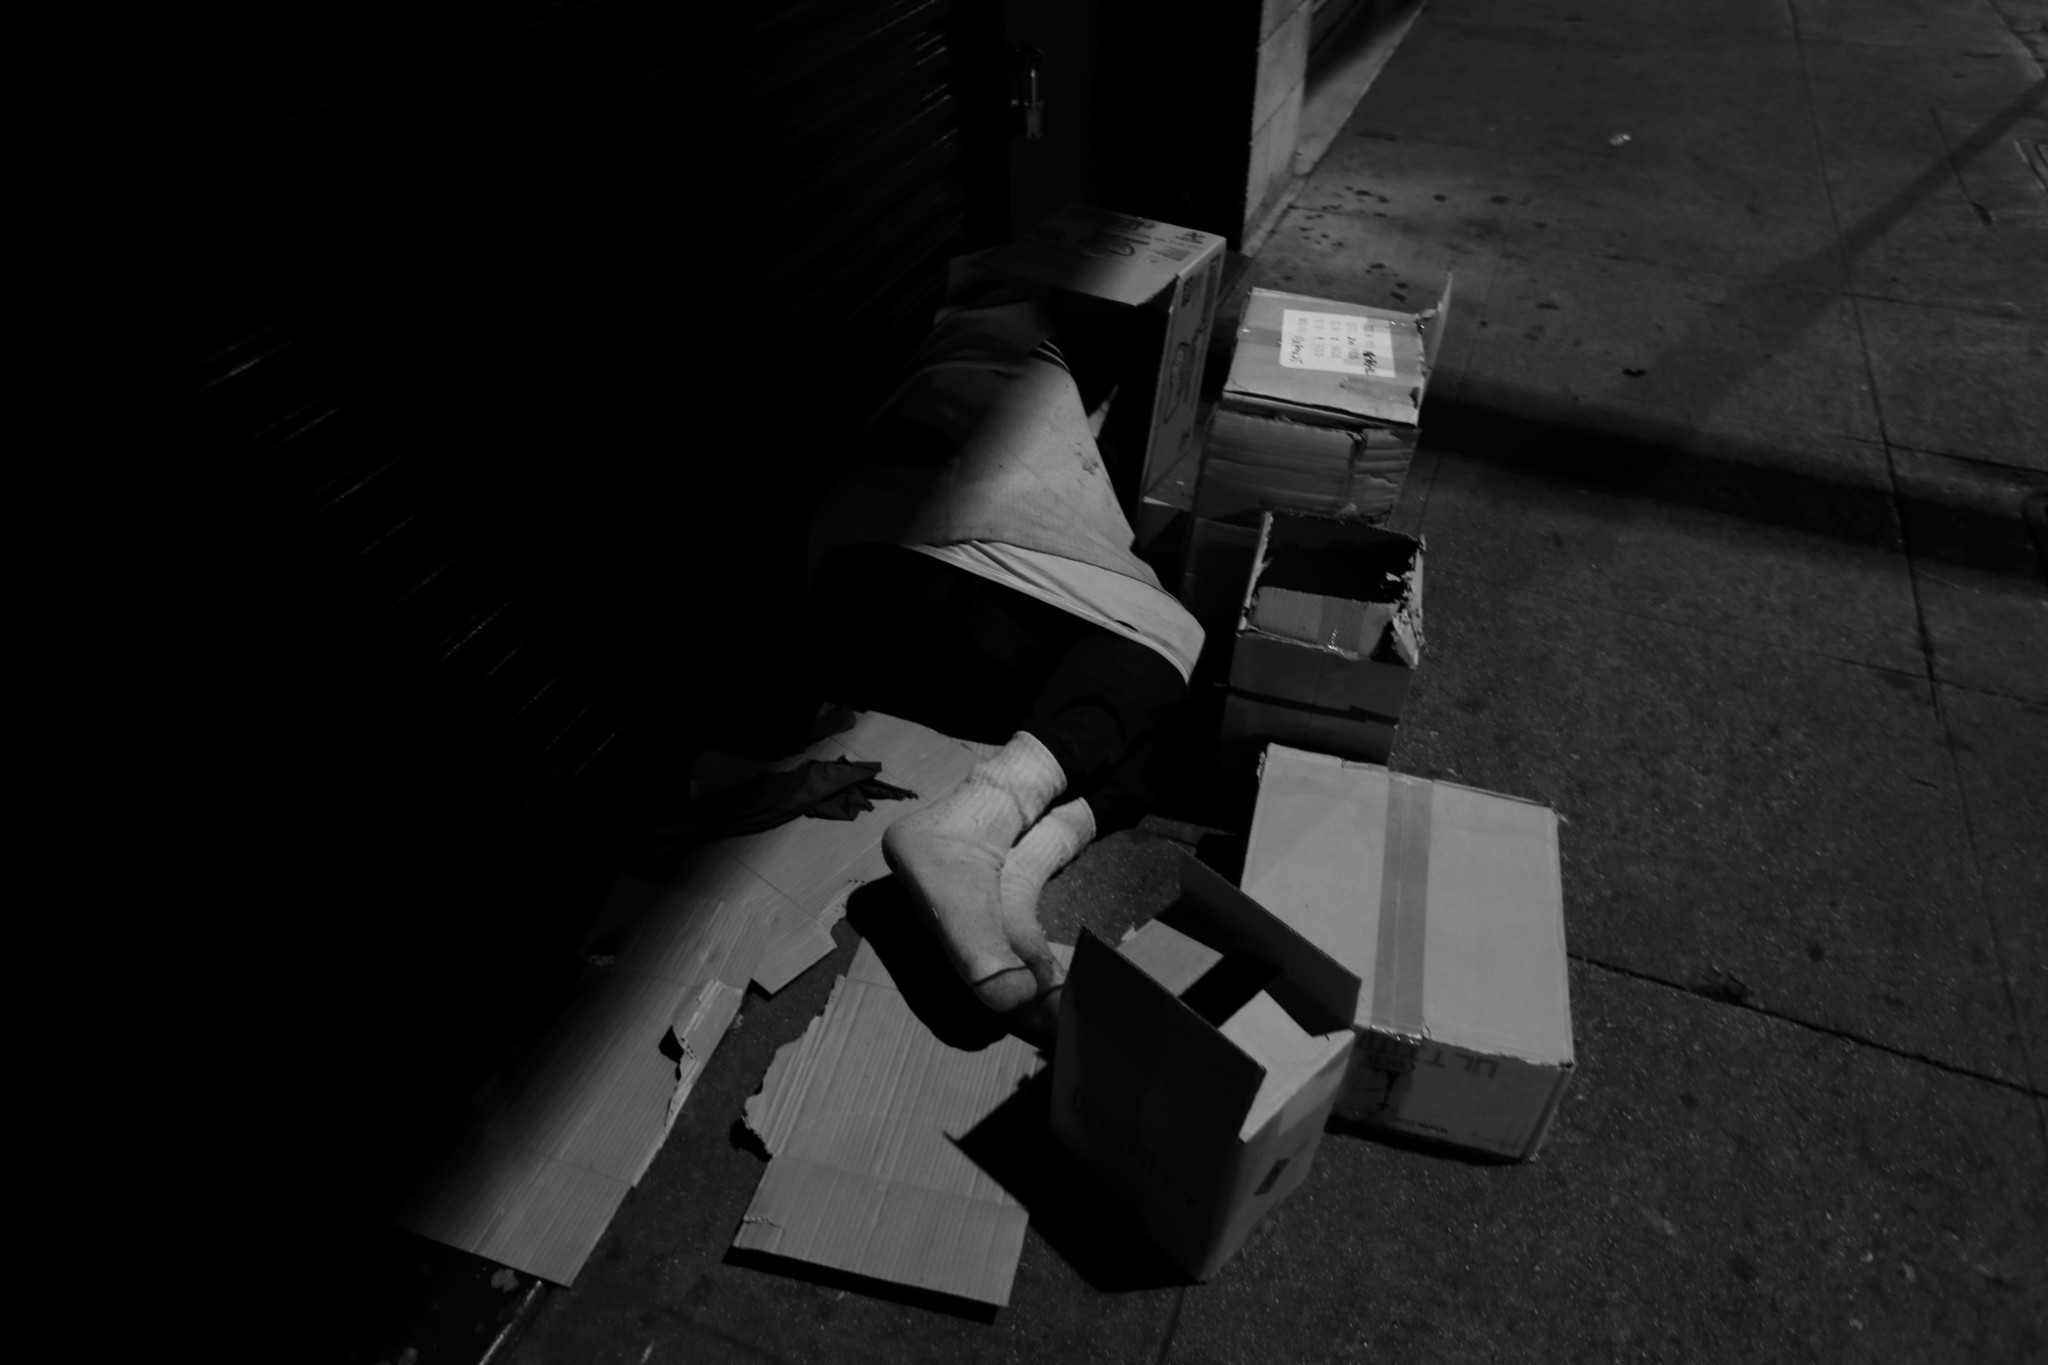 LOS ANGELES, CA February 2, 2018: A person sleeps on a piece of card board, surrounded by boxes o